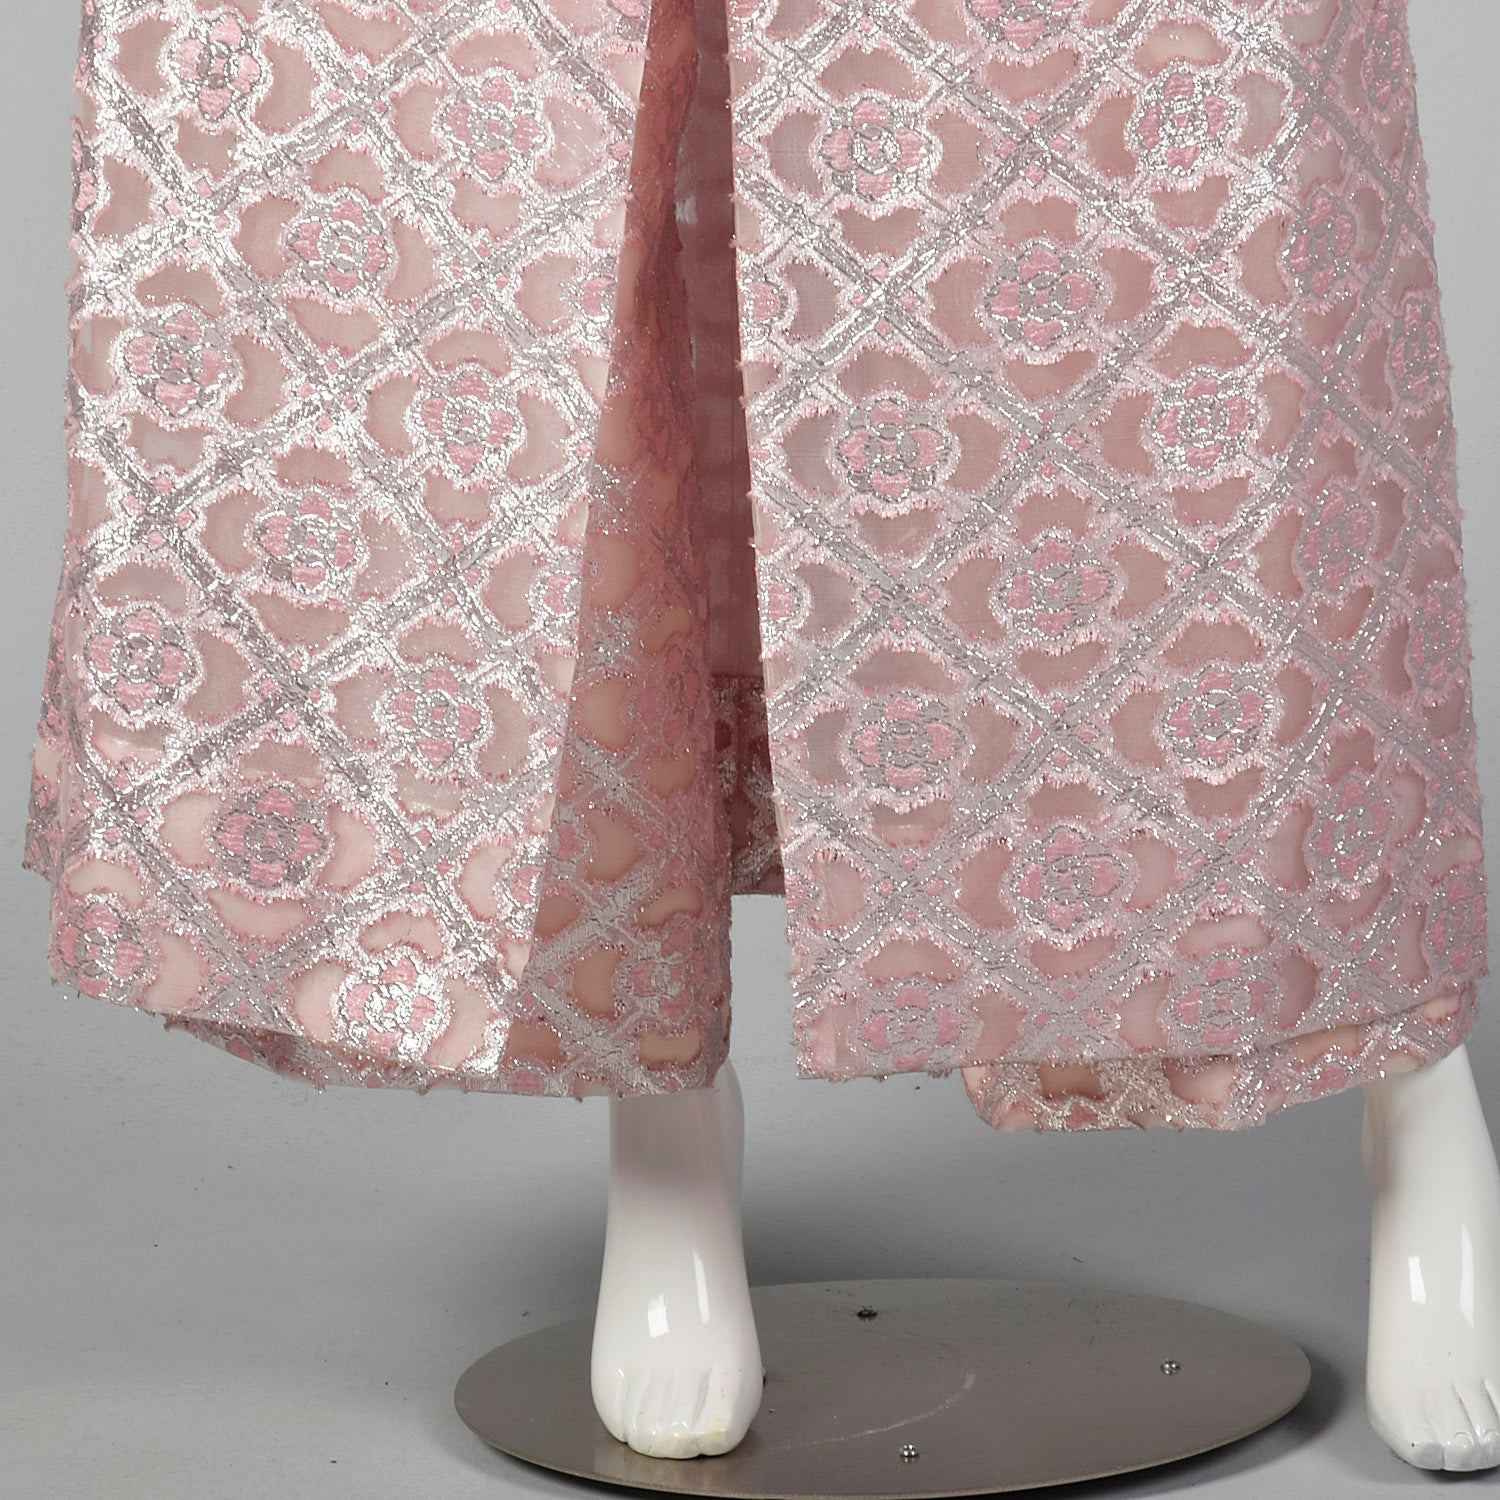 1960s Pink and Silver Tunic Dress and Pant Set